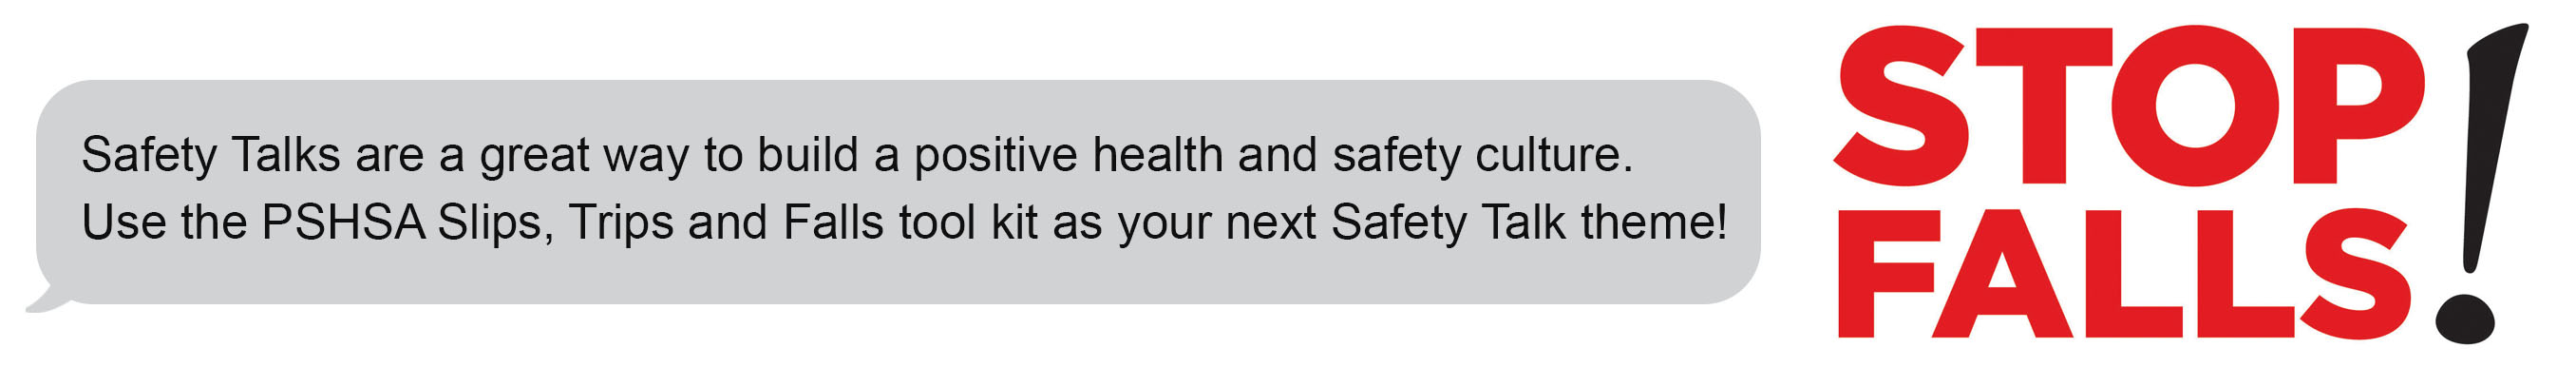 Safety Talks are a great way to build a positive health and safety culture. Use the PSHSA Slips, Trips and Falls tool kit as your next Safety Talk theme!